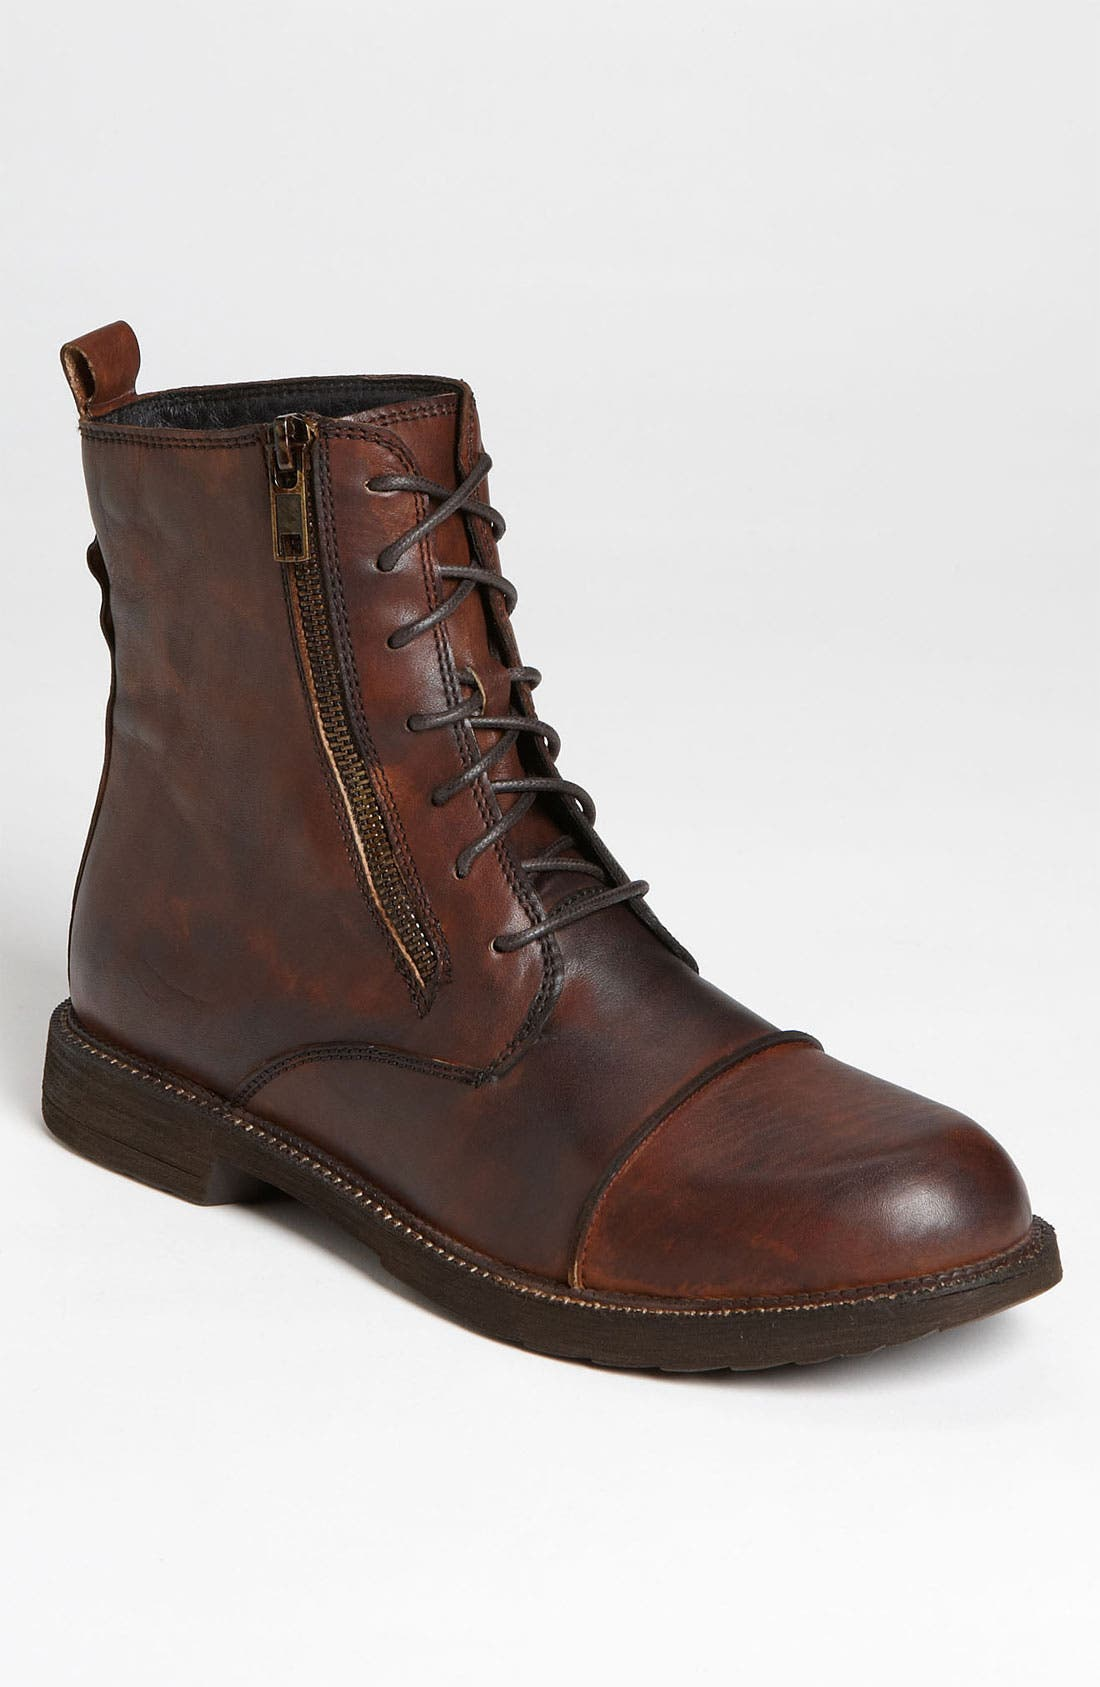 Main Image - Bed Stu 'Patriot' Cap Toe Boot (Men)